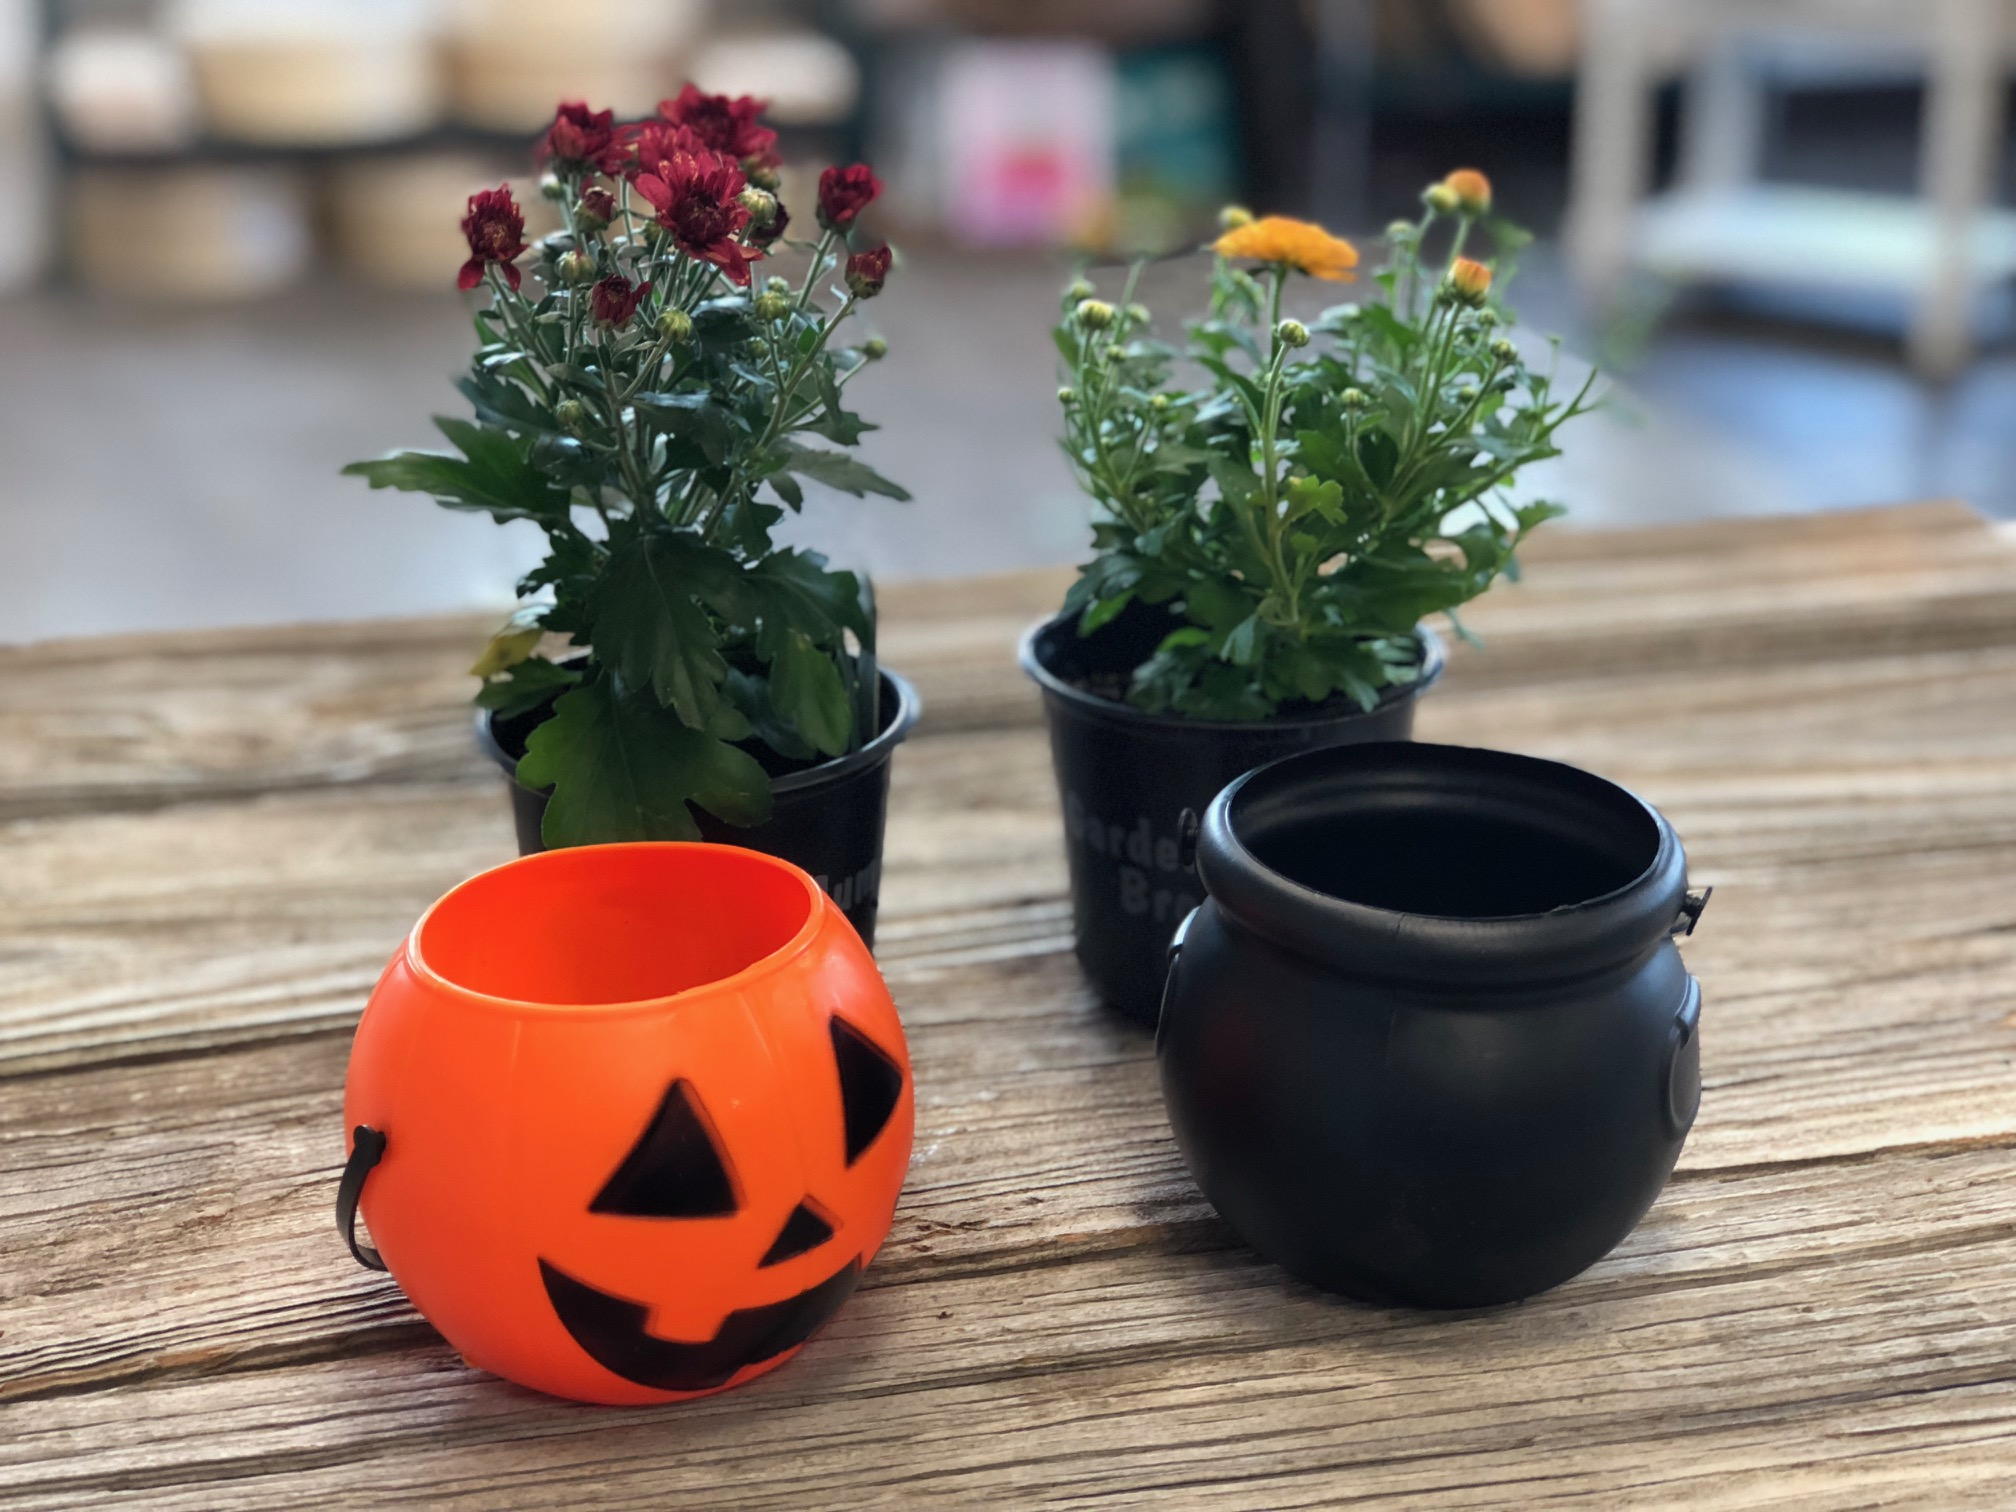 Easy and adorable mini mum planters for less than $2, get the look with this tutorial